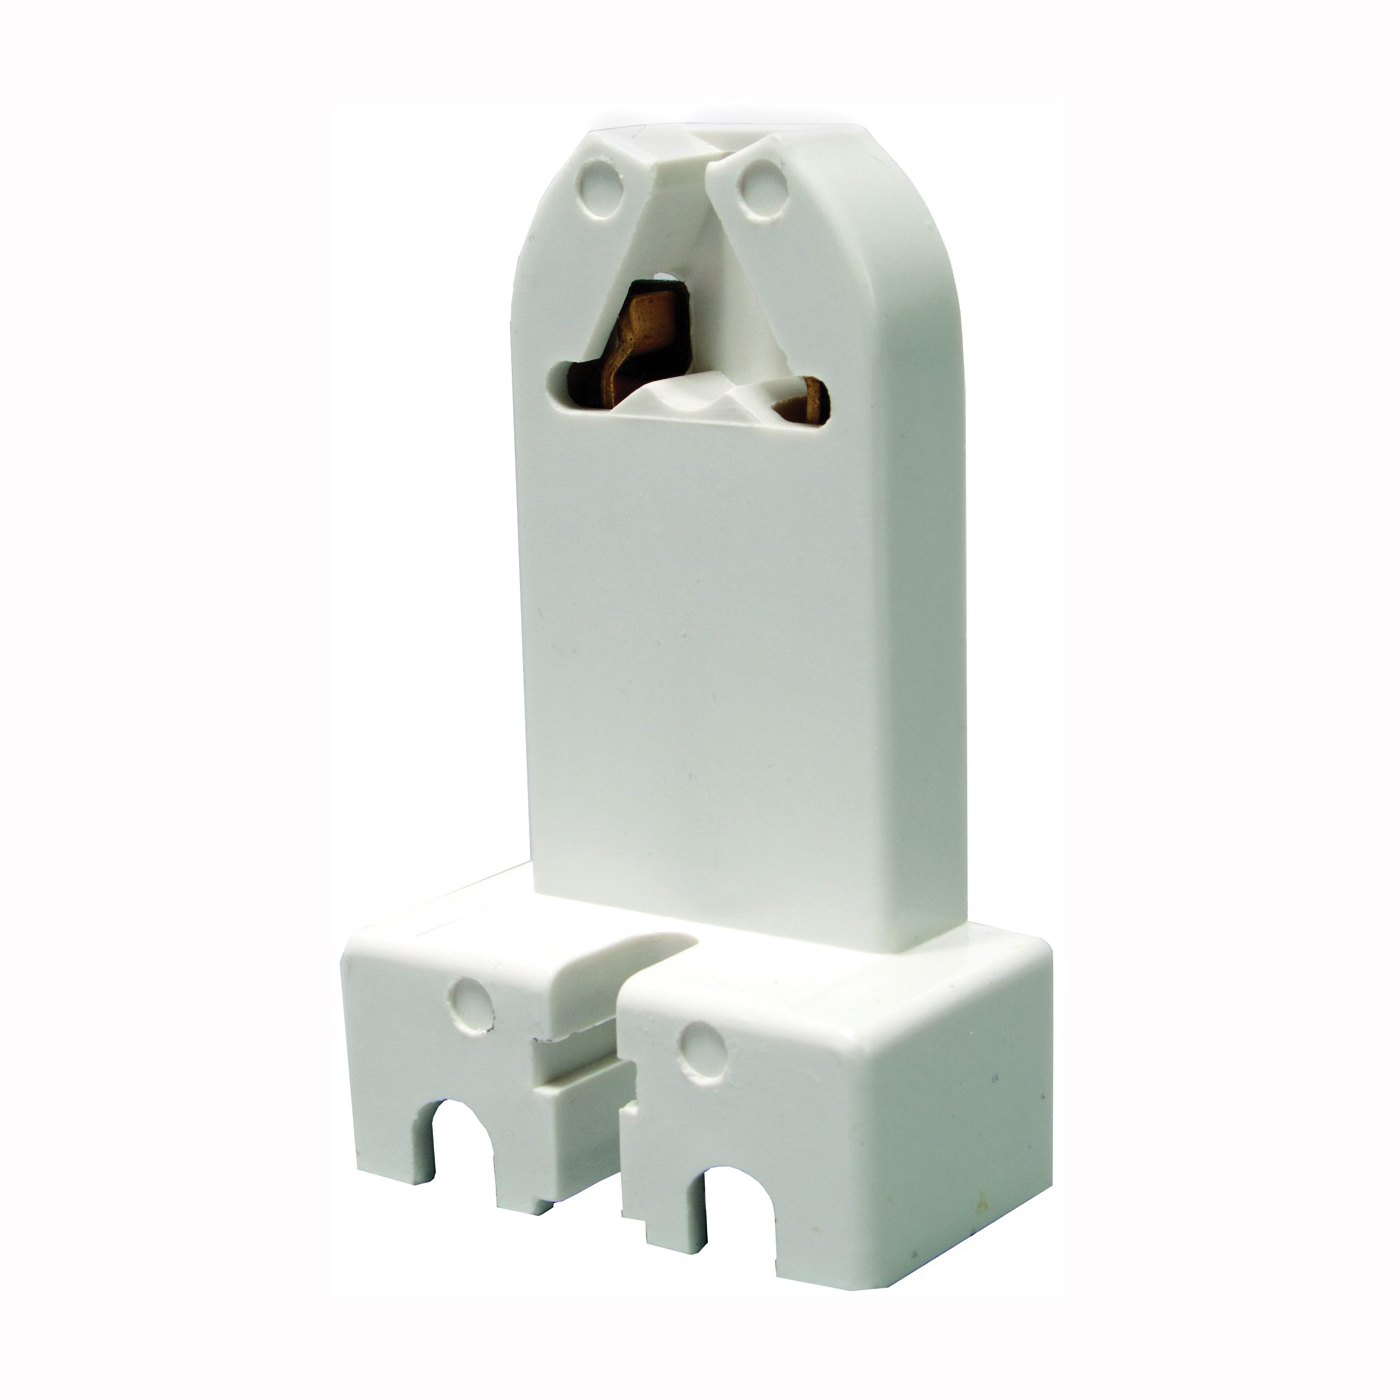 Picture of Eaton Wiring Devices 924W-BOX Lamp Holder, 600 VAC, 660 W, White